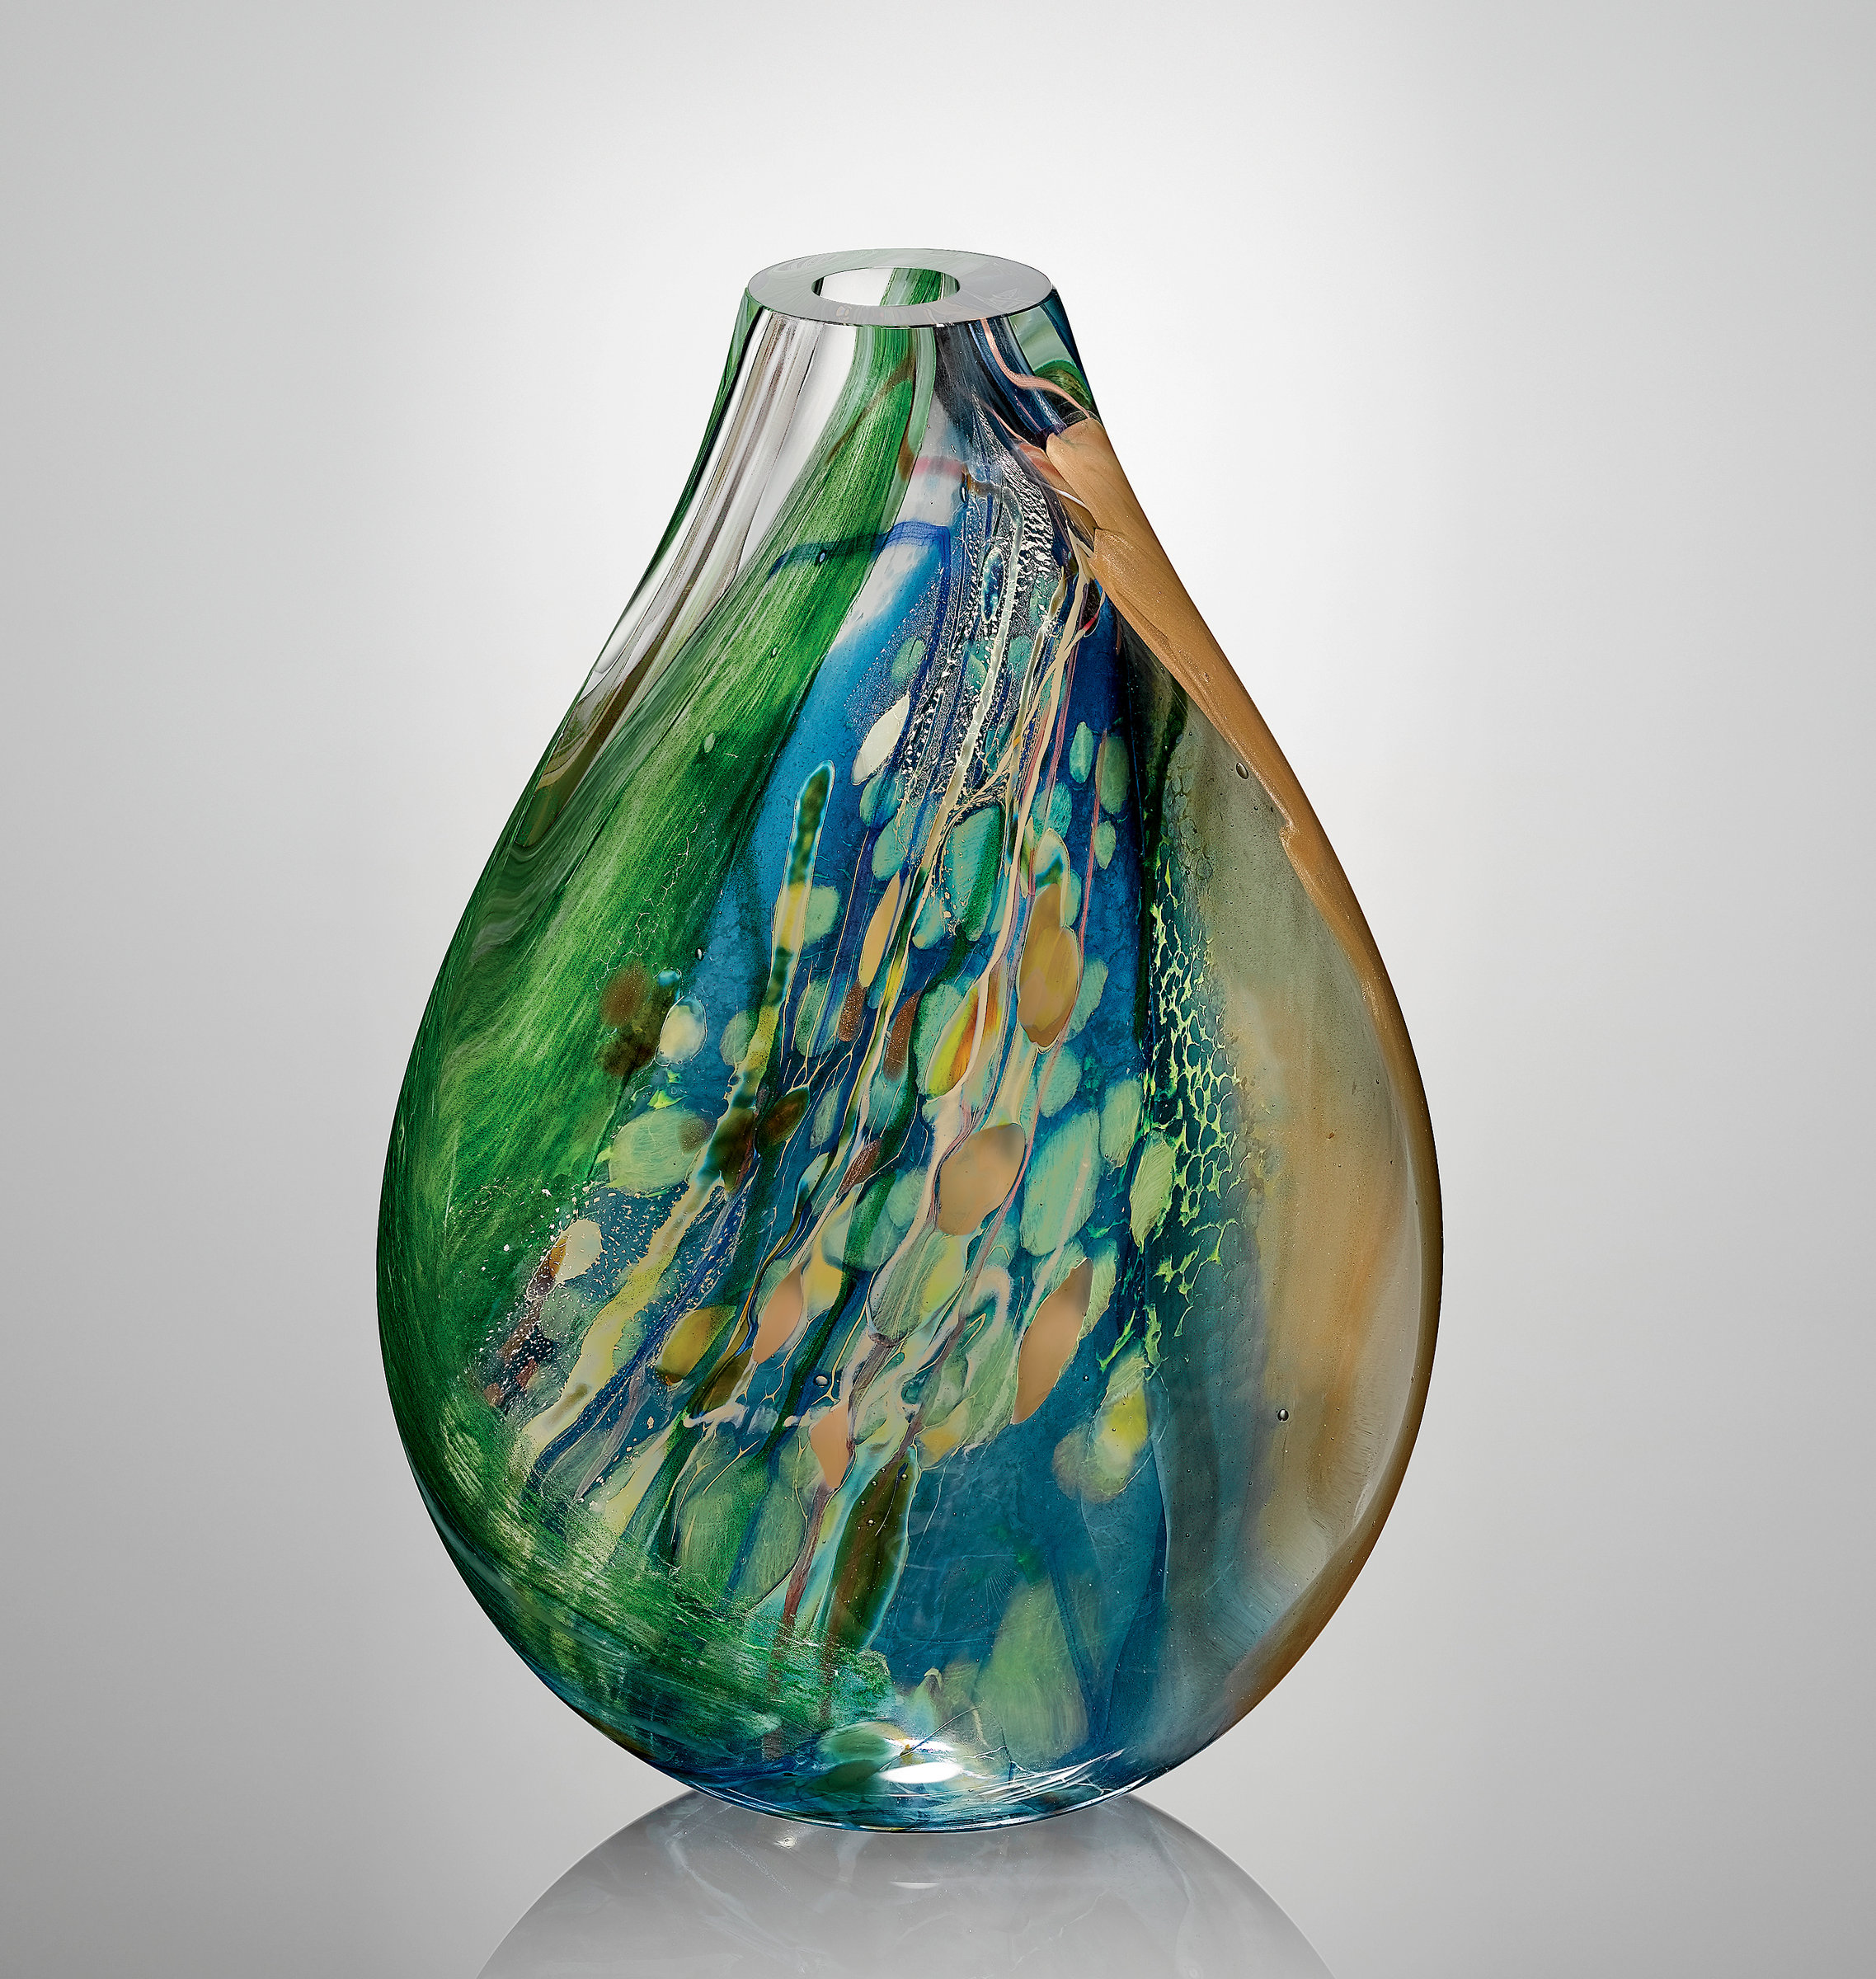 Aquos Flat - Art Glass Vessel - by Randi Solin